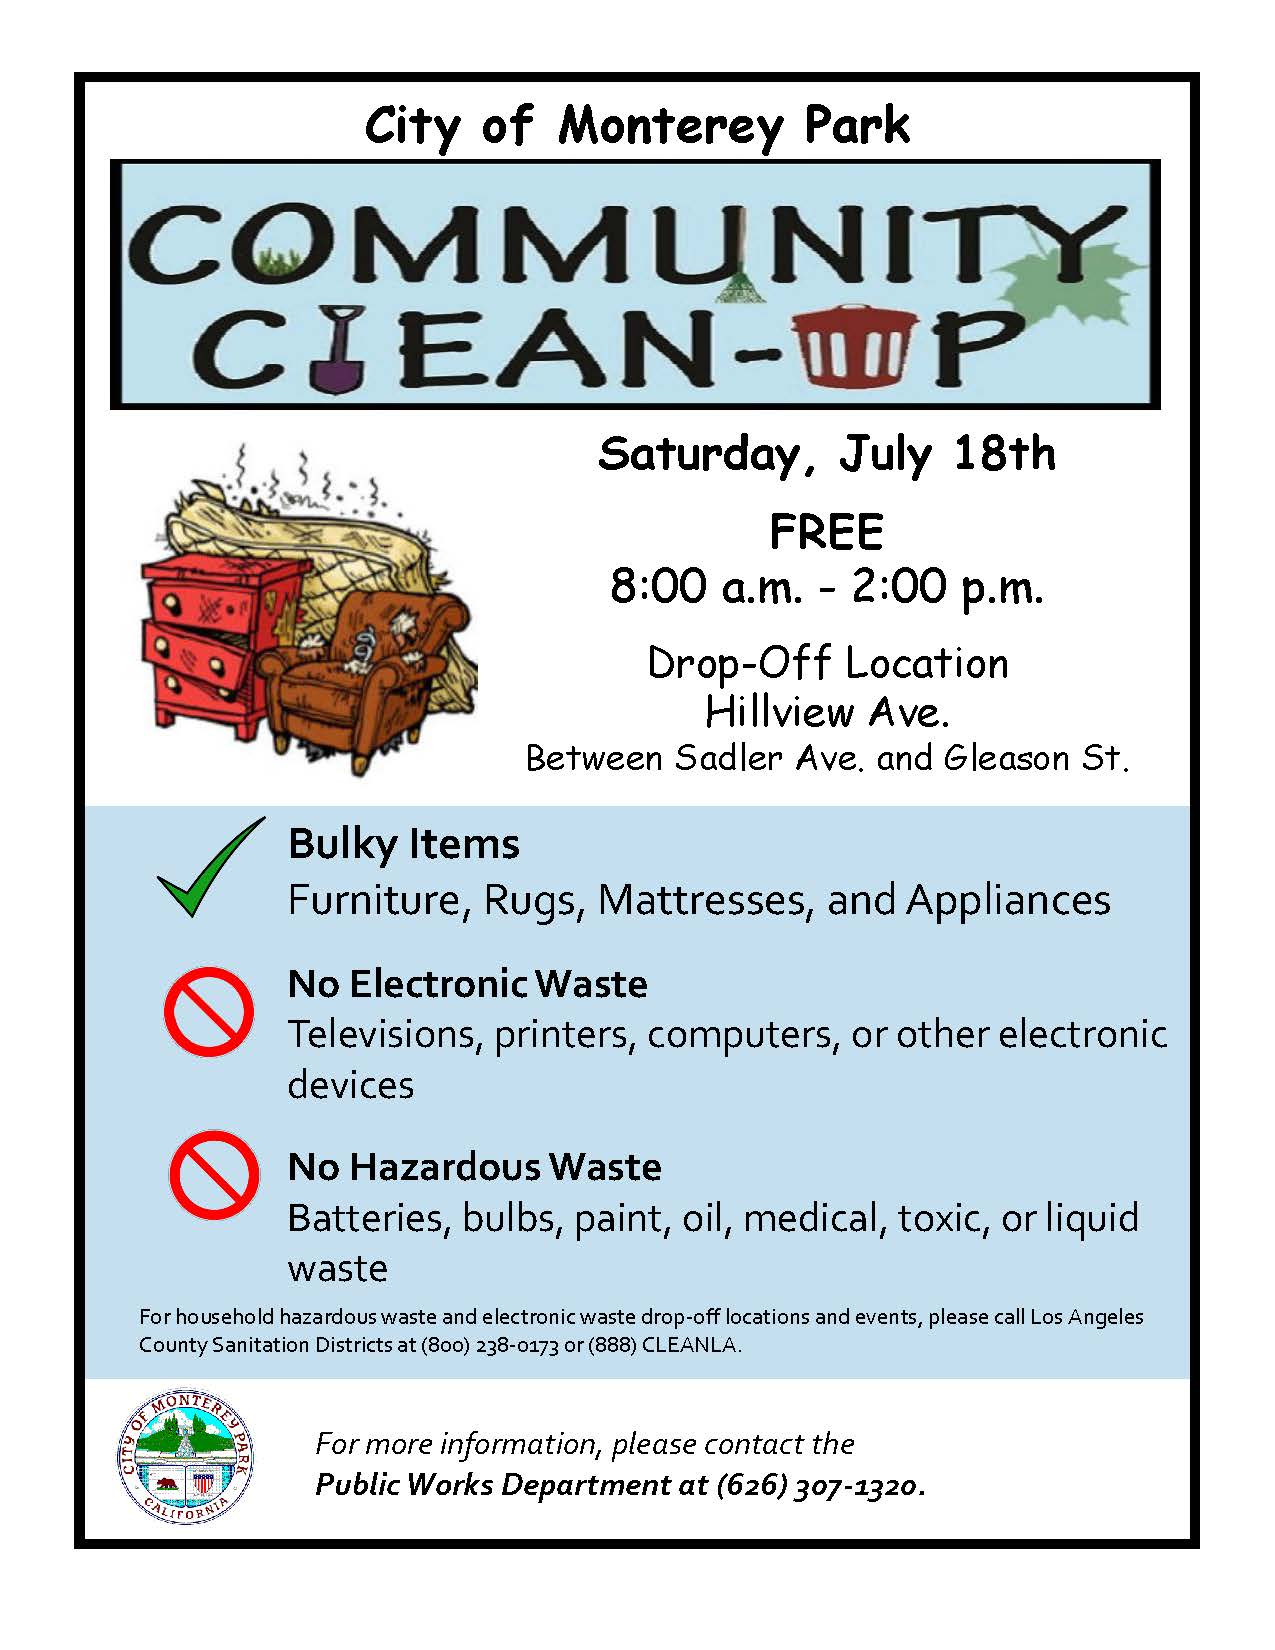 Community Clean Up Flyer 7-18-20 bulky items etc